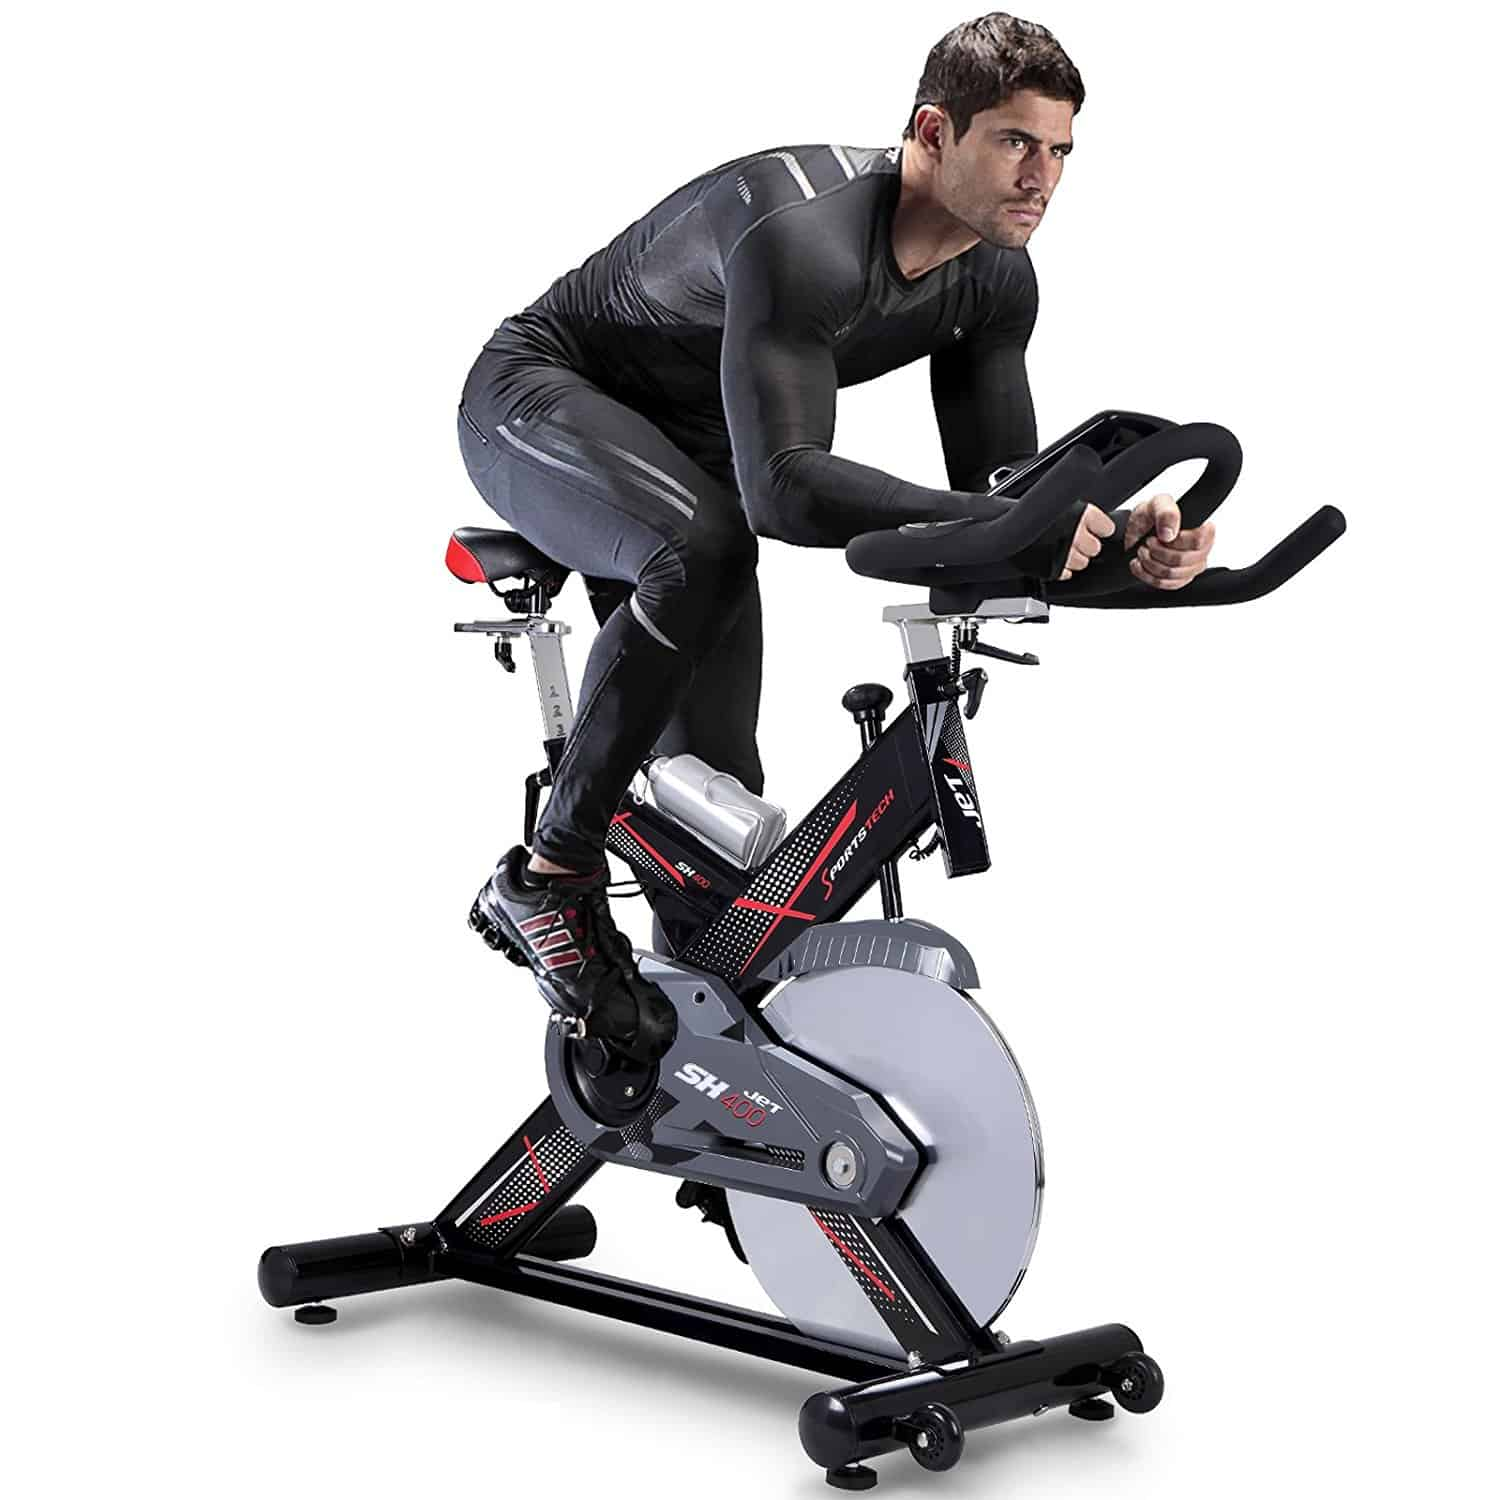 A Fitness Fighters Guide: Sportstech SX400 Professional Indoor Cycle Review